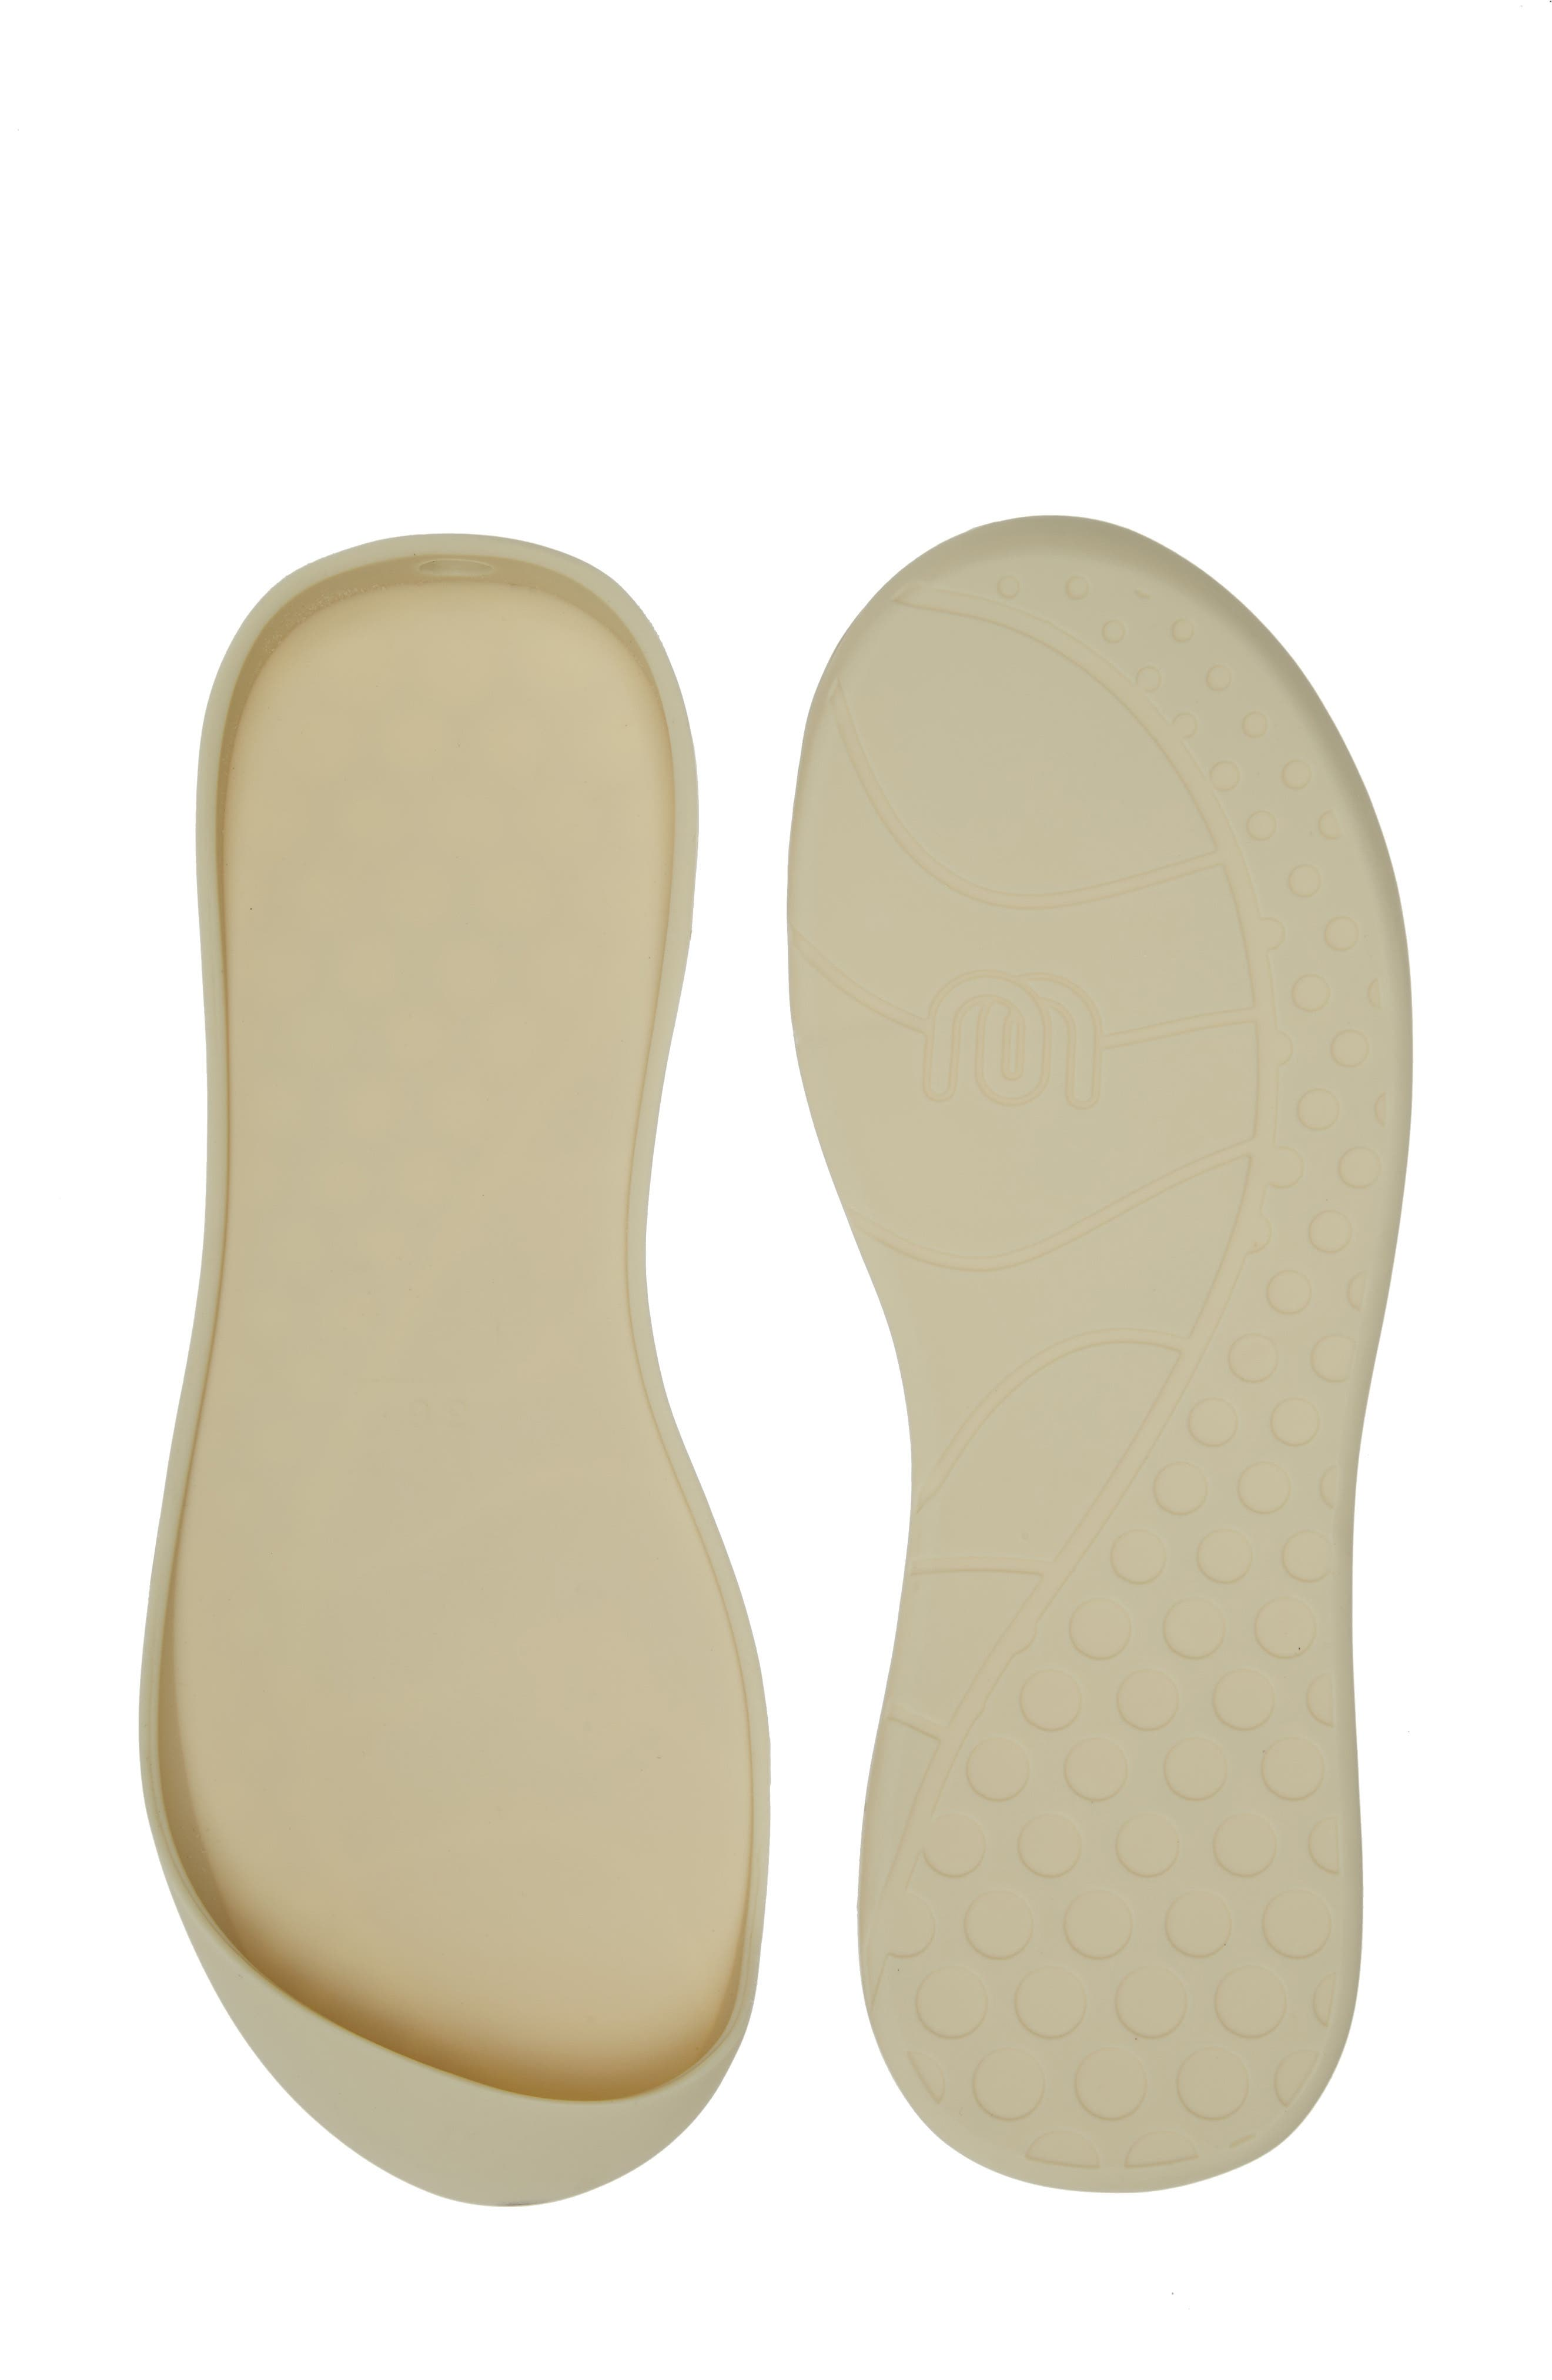 Mahabis Classic Sole for Mahabis Slippers